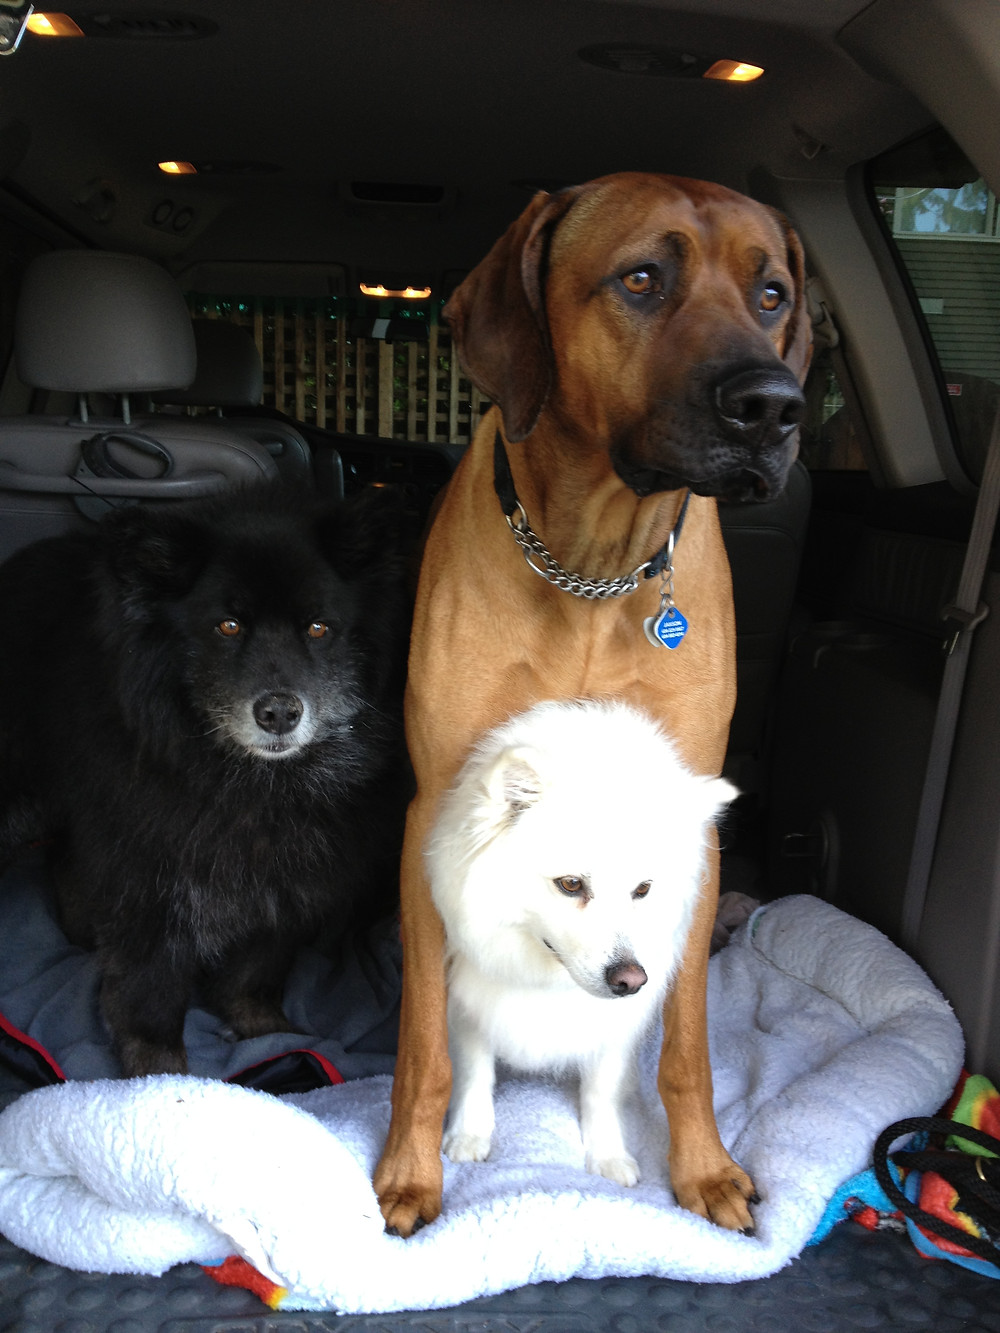 Asking the dogs to wait in the car until they give eye contact.